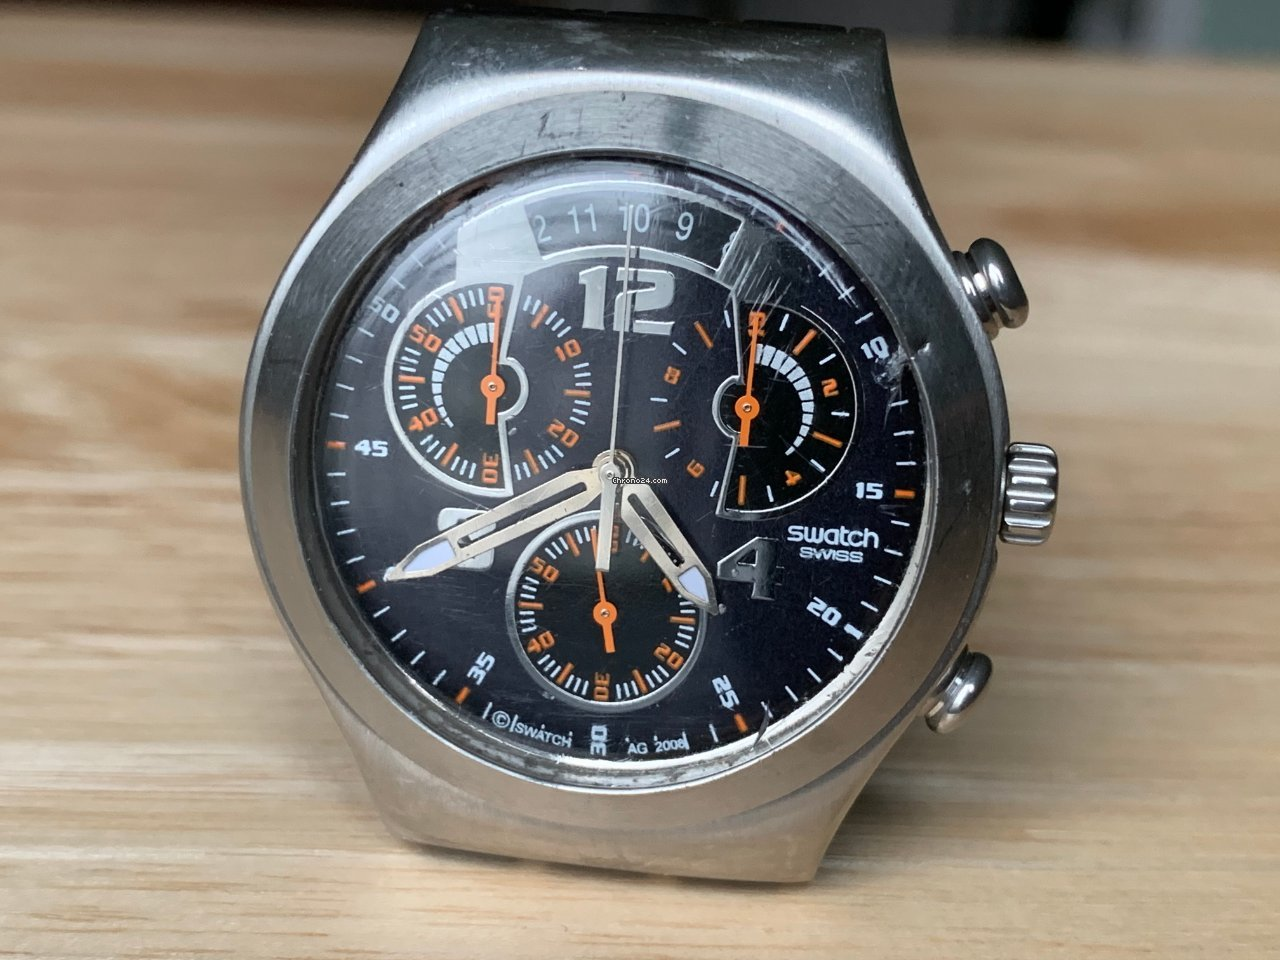 Swatch pre-owned